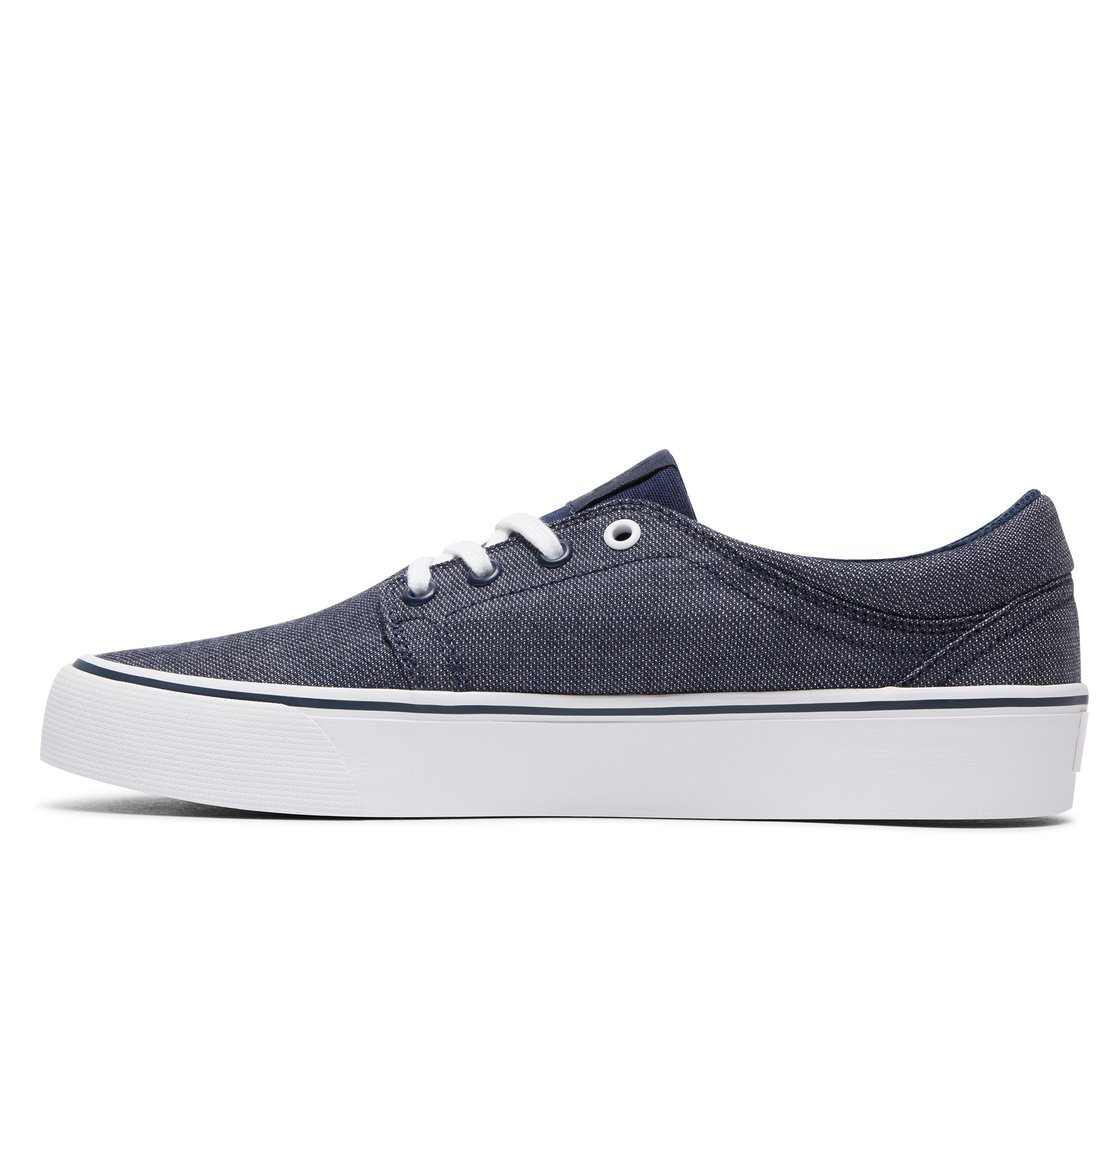 Trase TX SE - Baskets - Bleu - DC Shoes